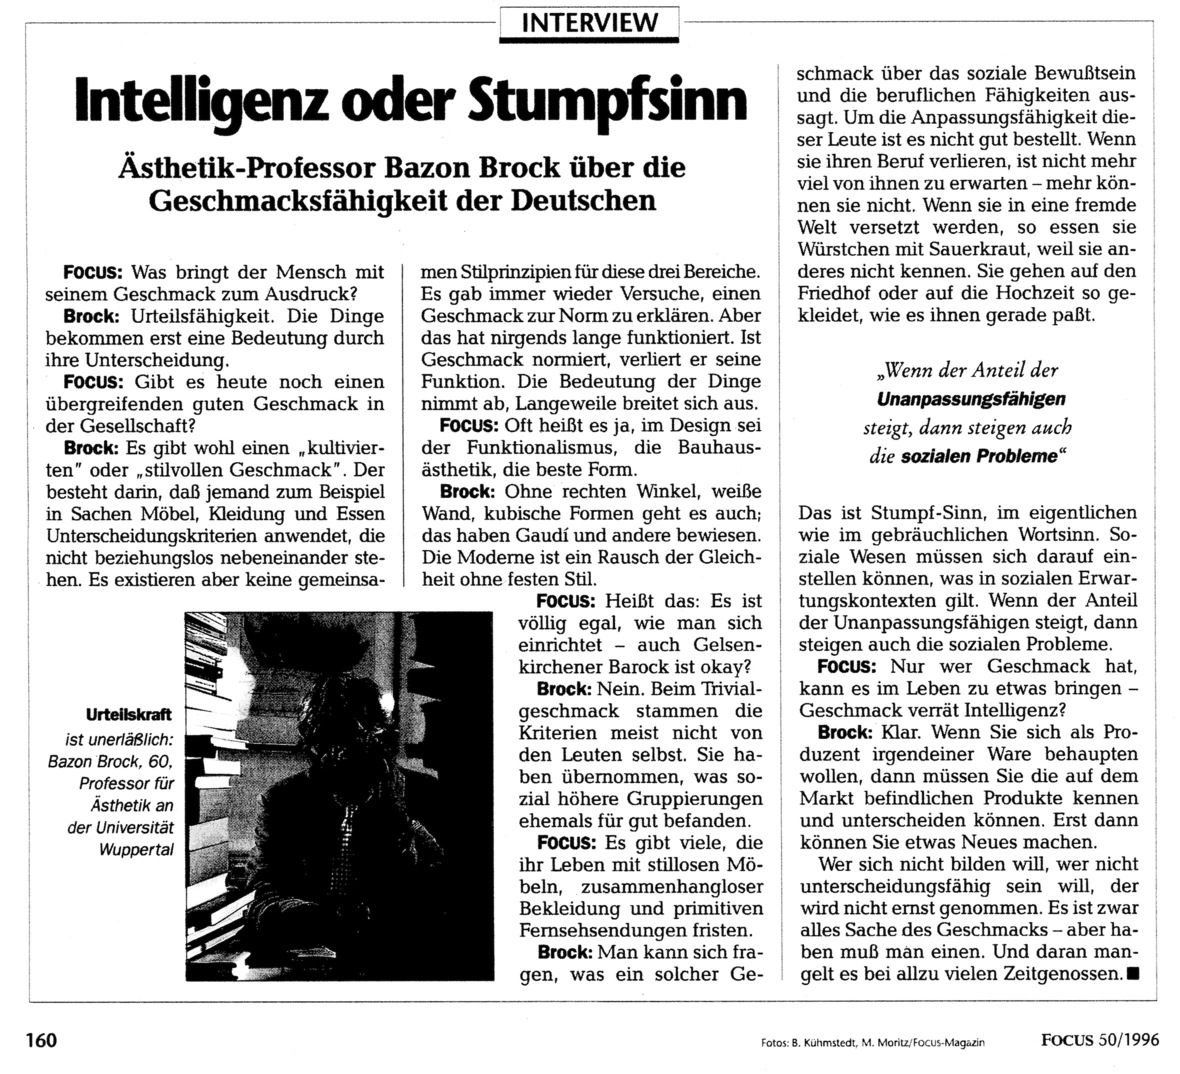 "Interview ""Intelligenz oder Stumpfsinn"". Ästhetikprofessor Bazon Brock über die Geschmacksfähigkeit der Deutschen"